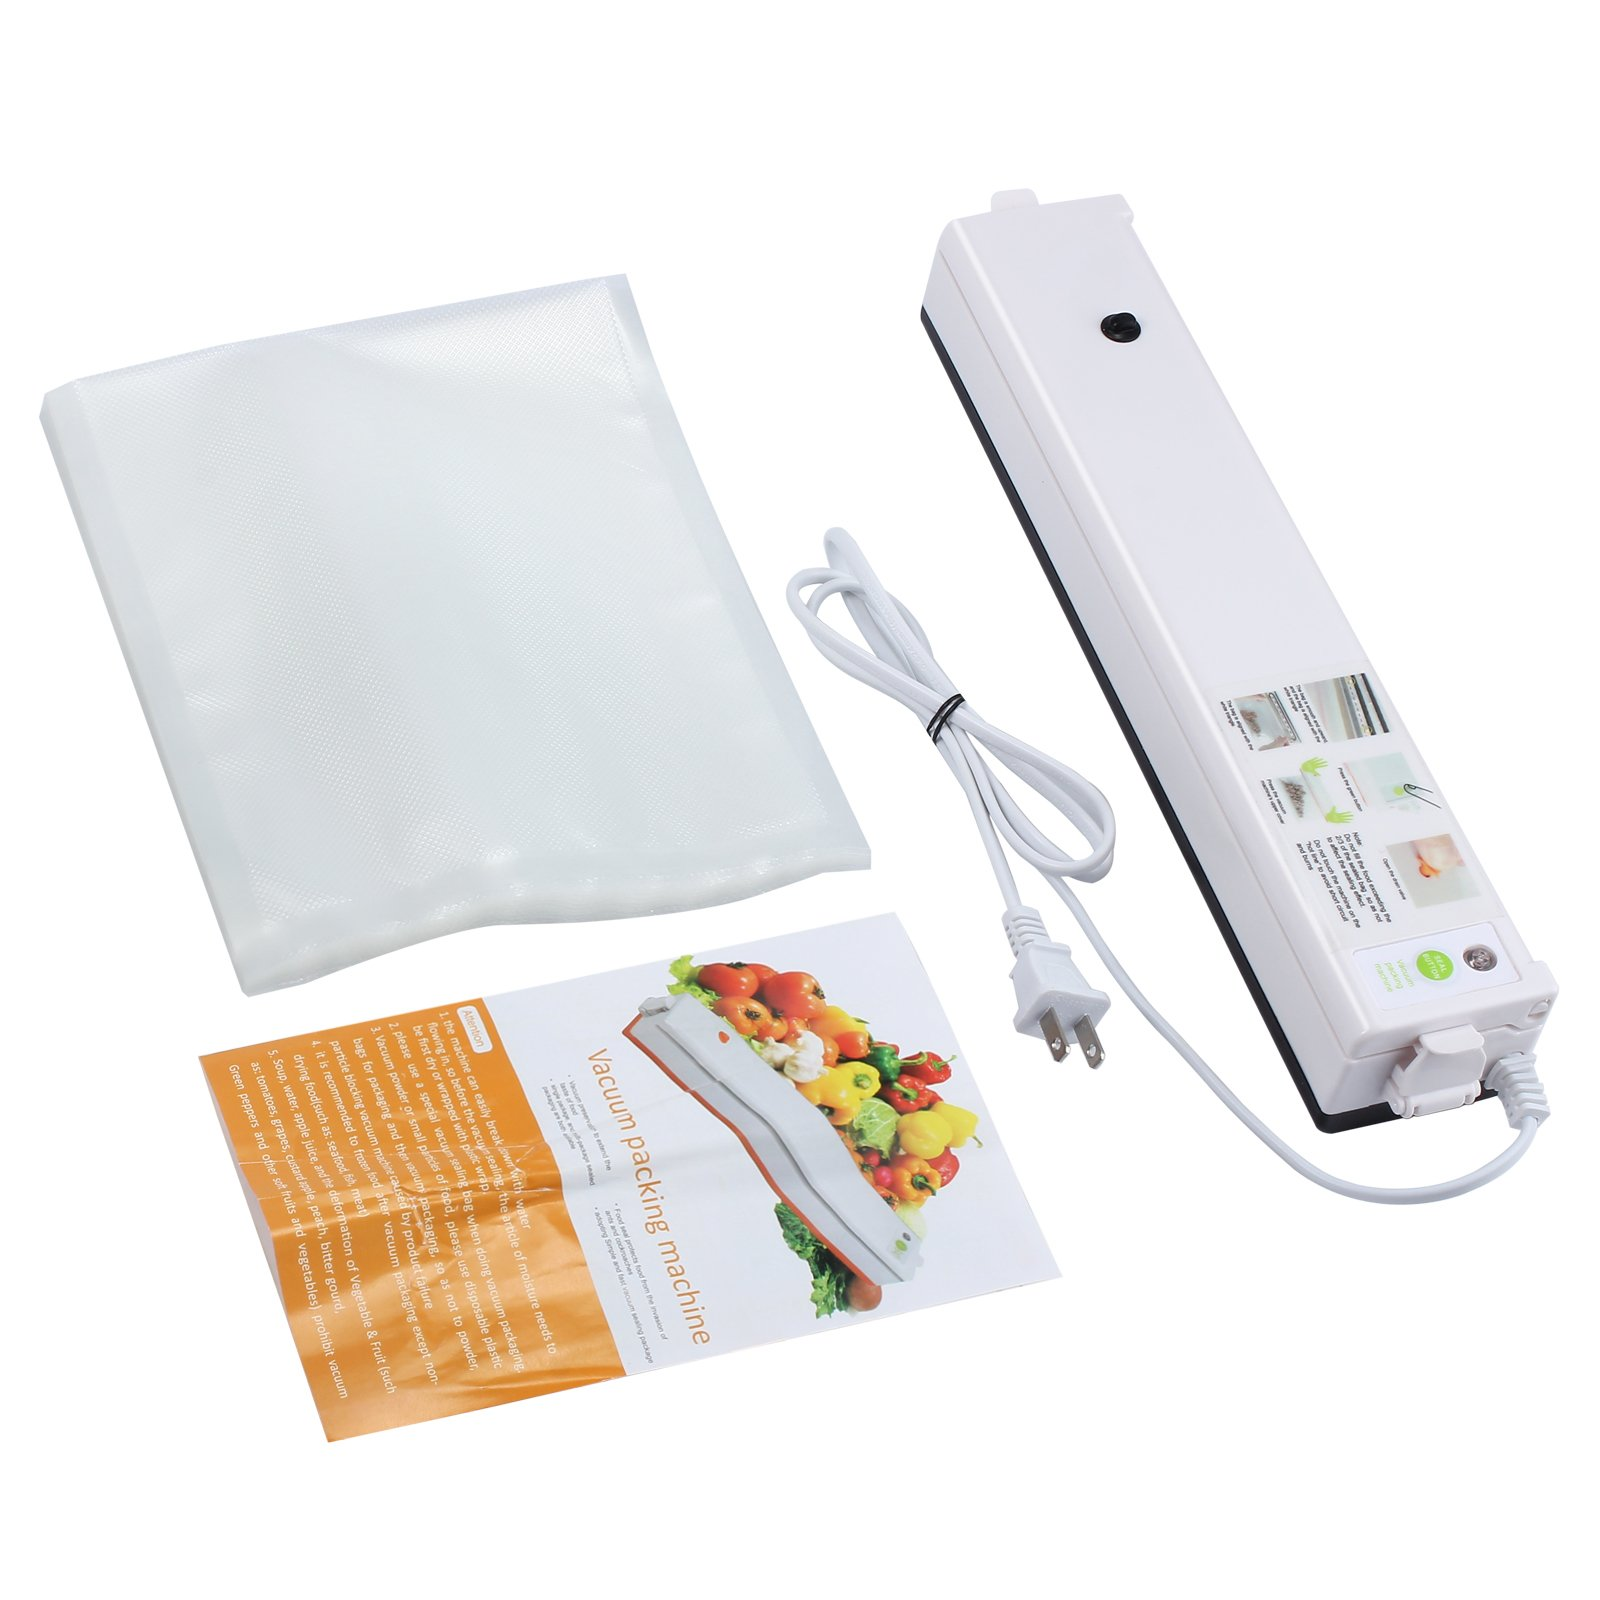 Proster Vacuum Sealer Machine Food Preservation Vacuum Sealing Packing Machine with 20Pcs Sealer Bags